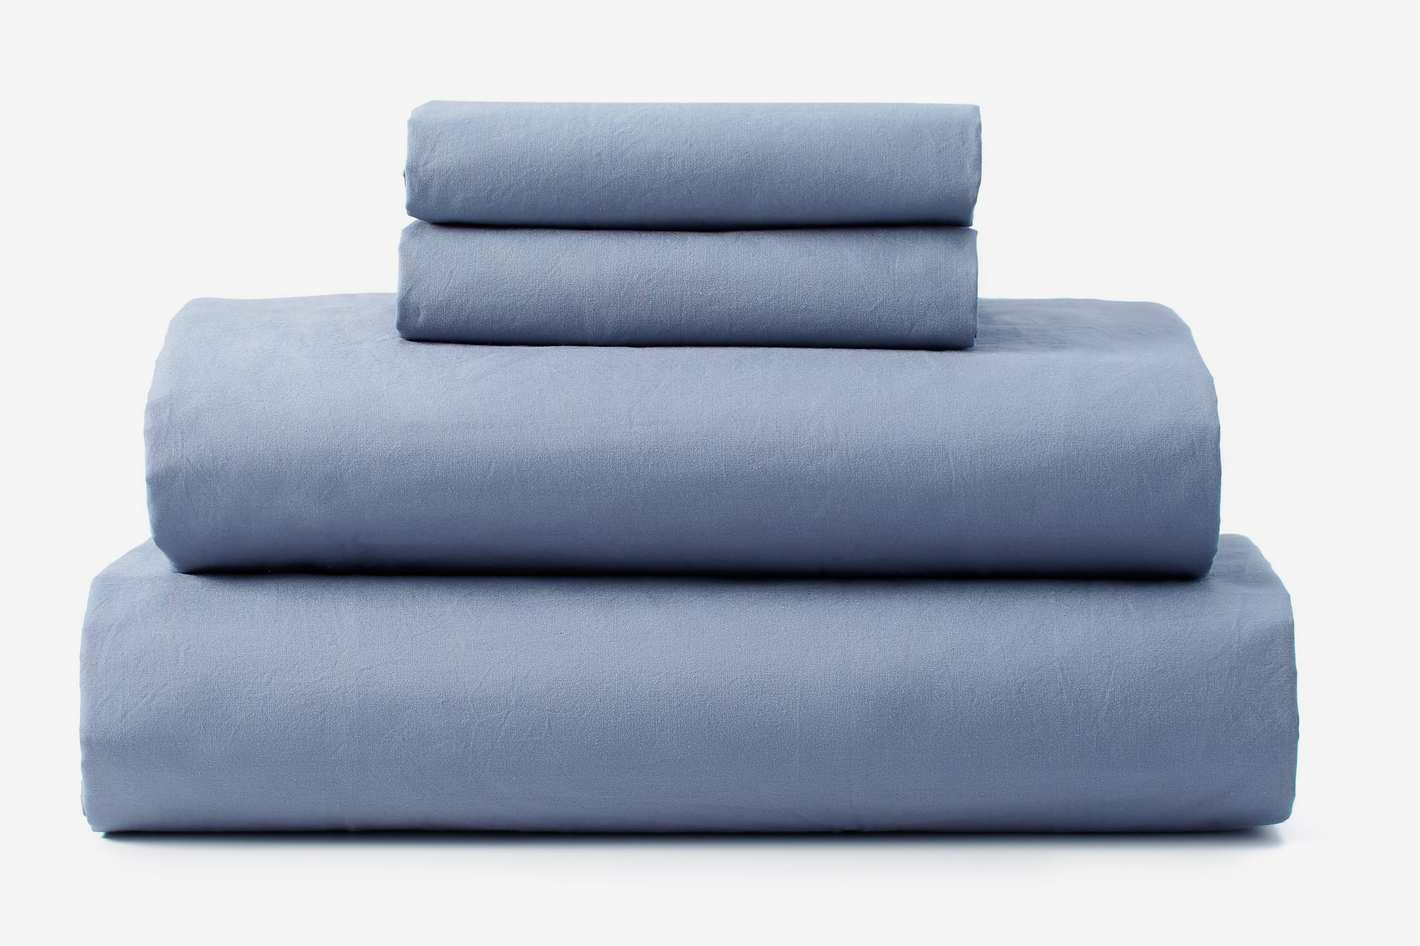 Upstate Pure Washed Cotton Sheet Set - Queen